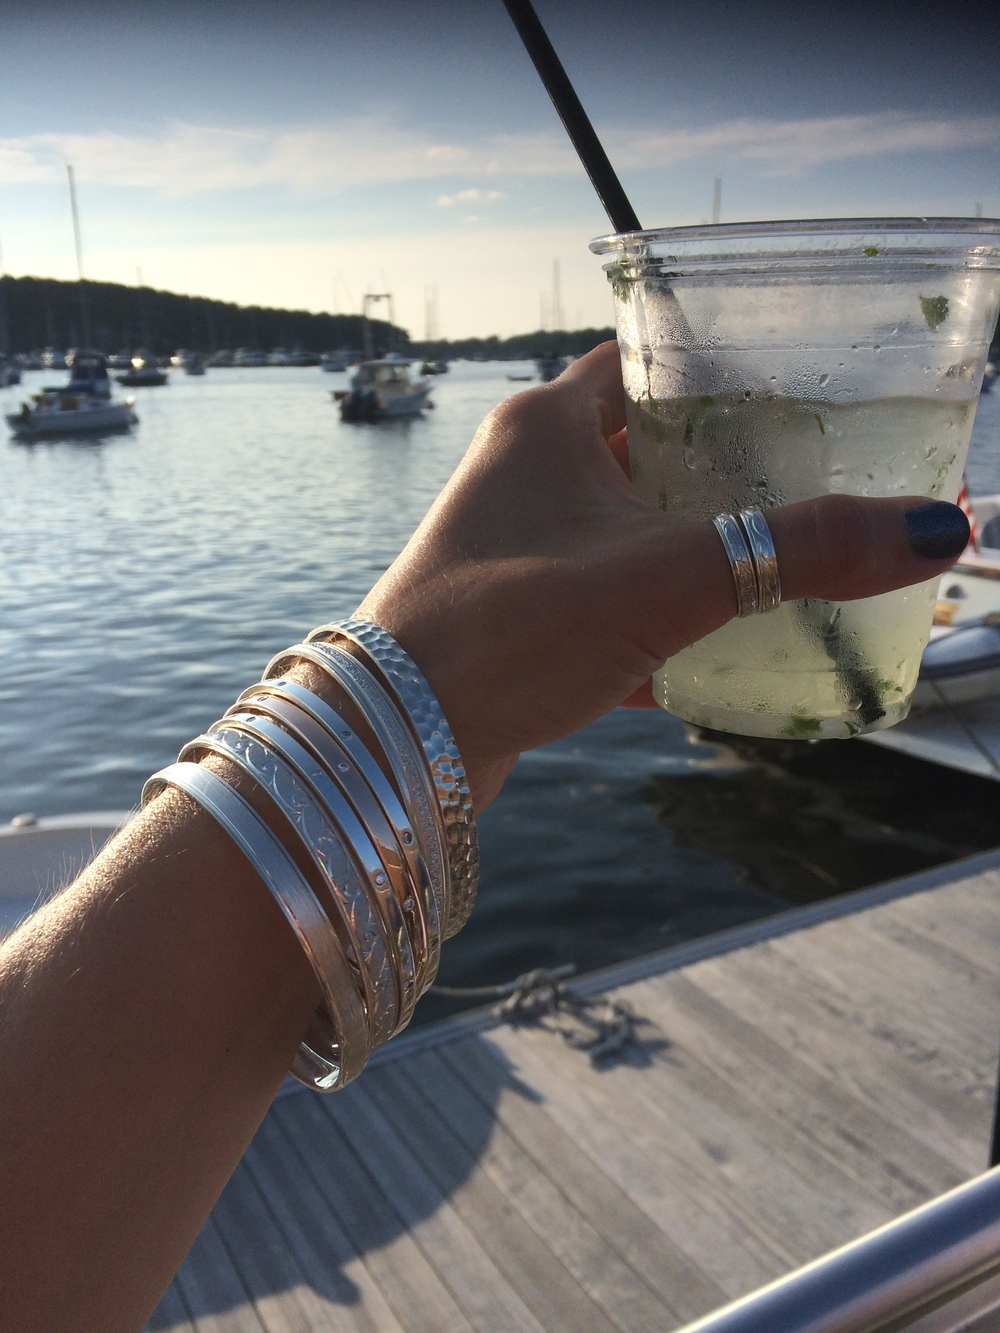 Our stackable Argentium silver bangles and silver stacking rings are proudly made in beautiful Long Island, New York. And that deserves a Cheers!